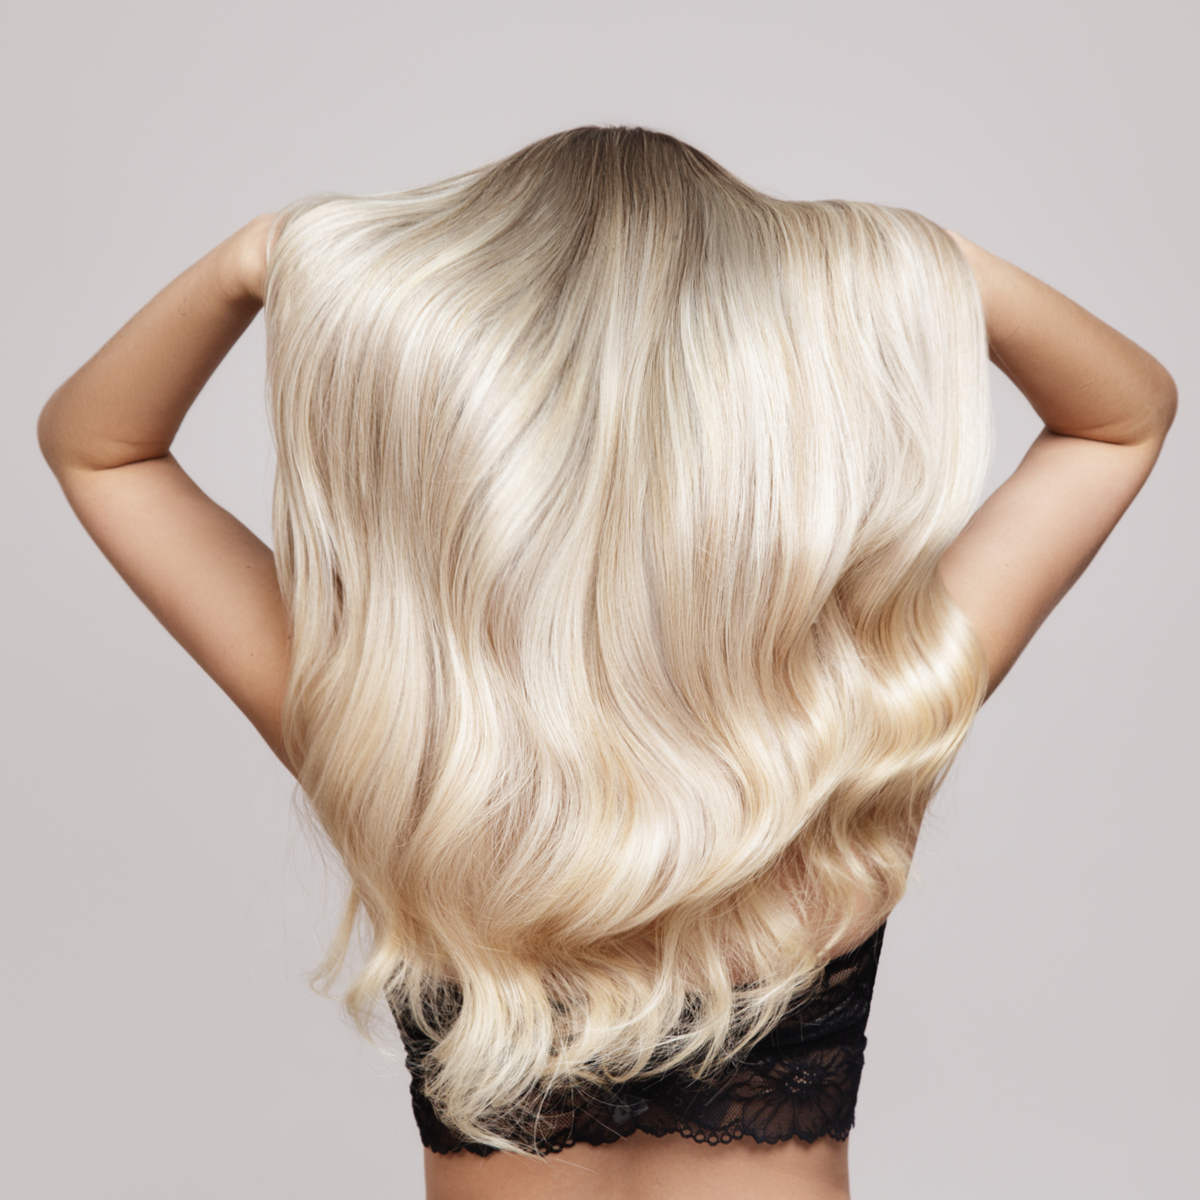 Best Hair Extensions Charlotte